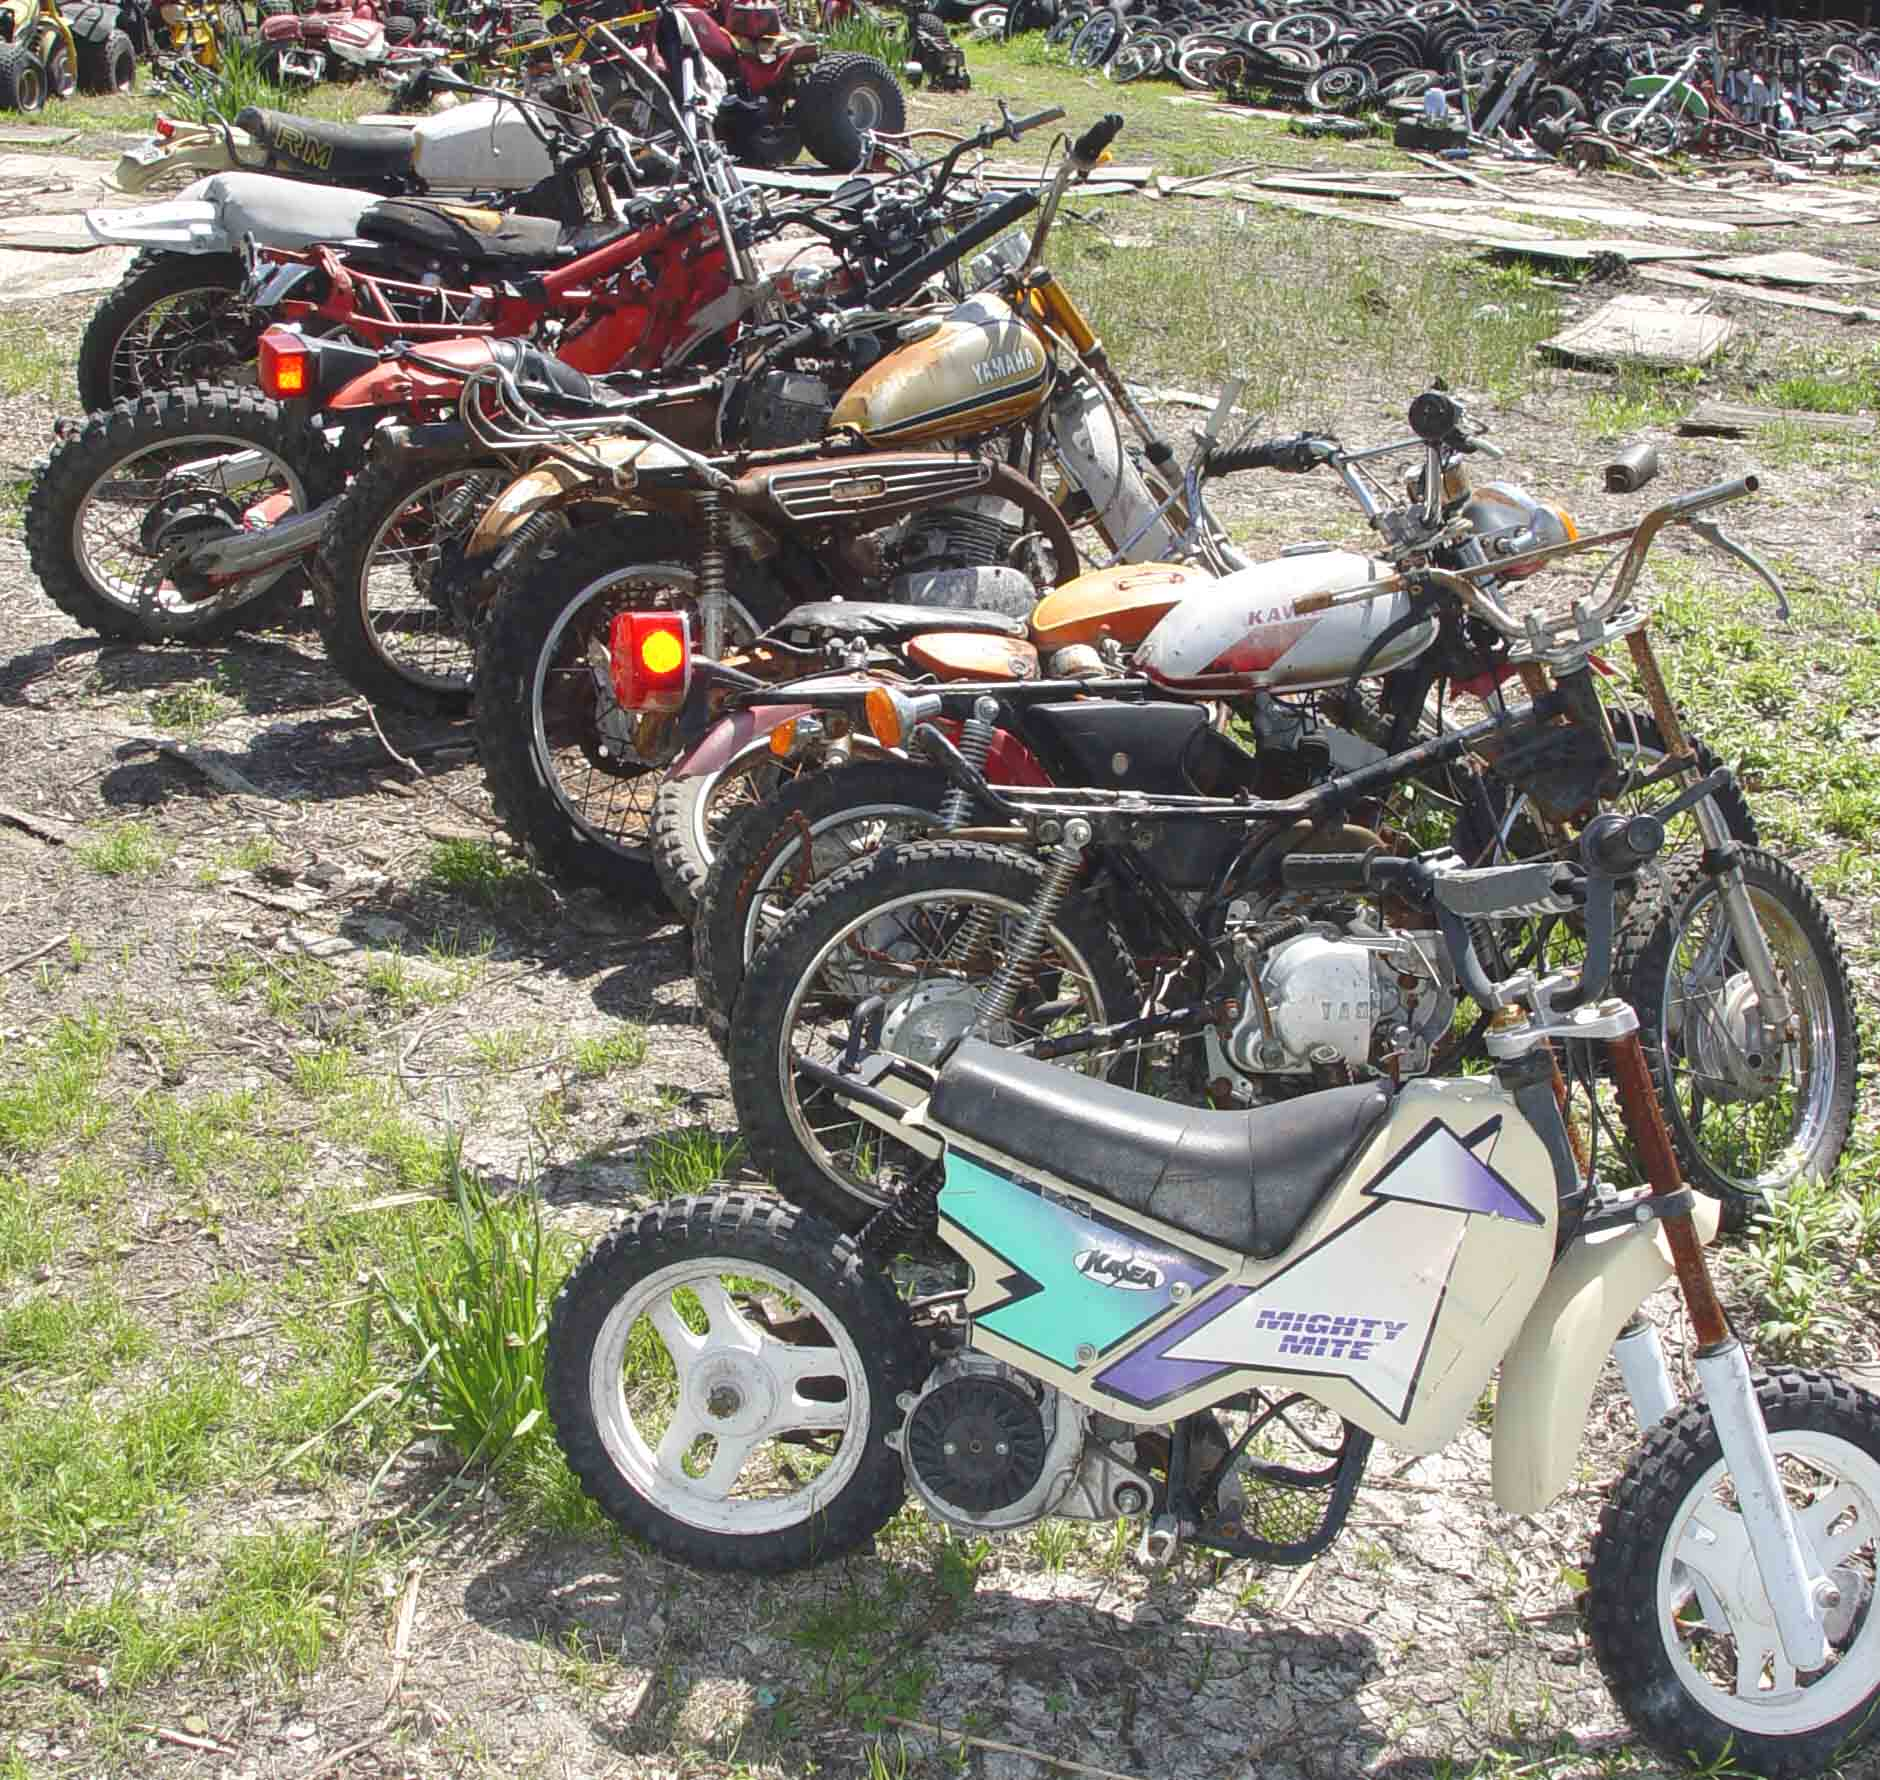 Live motorcycle salvage yard auction june 5 2004 dallas for Motor cycle junk yard